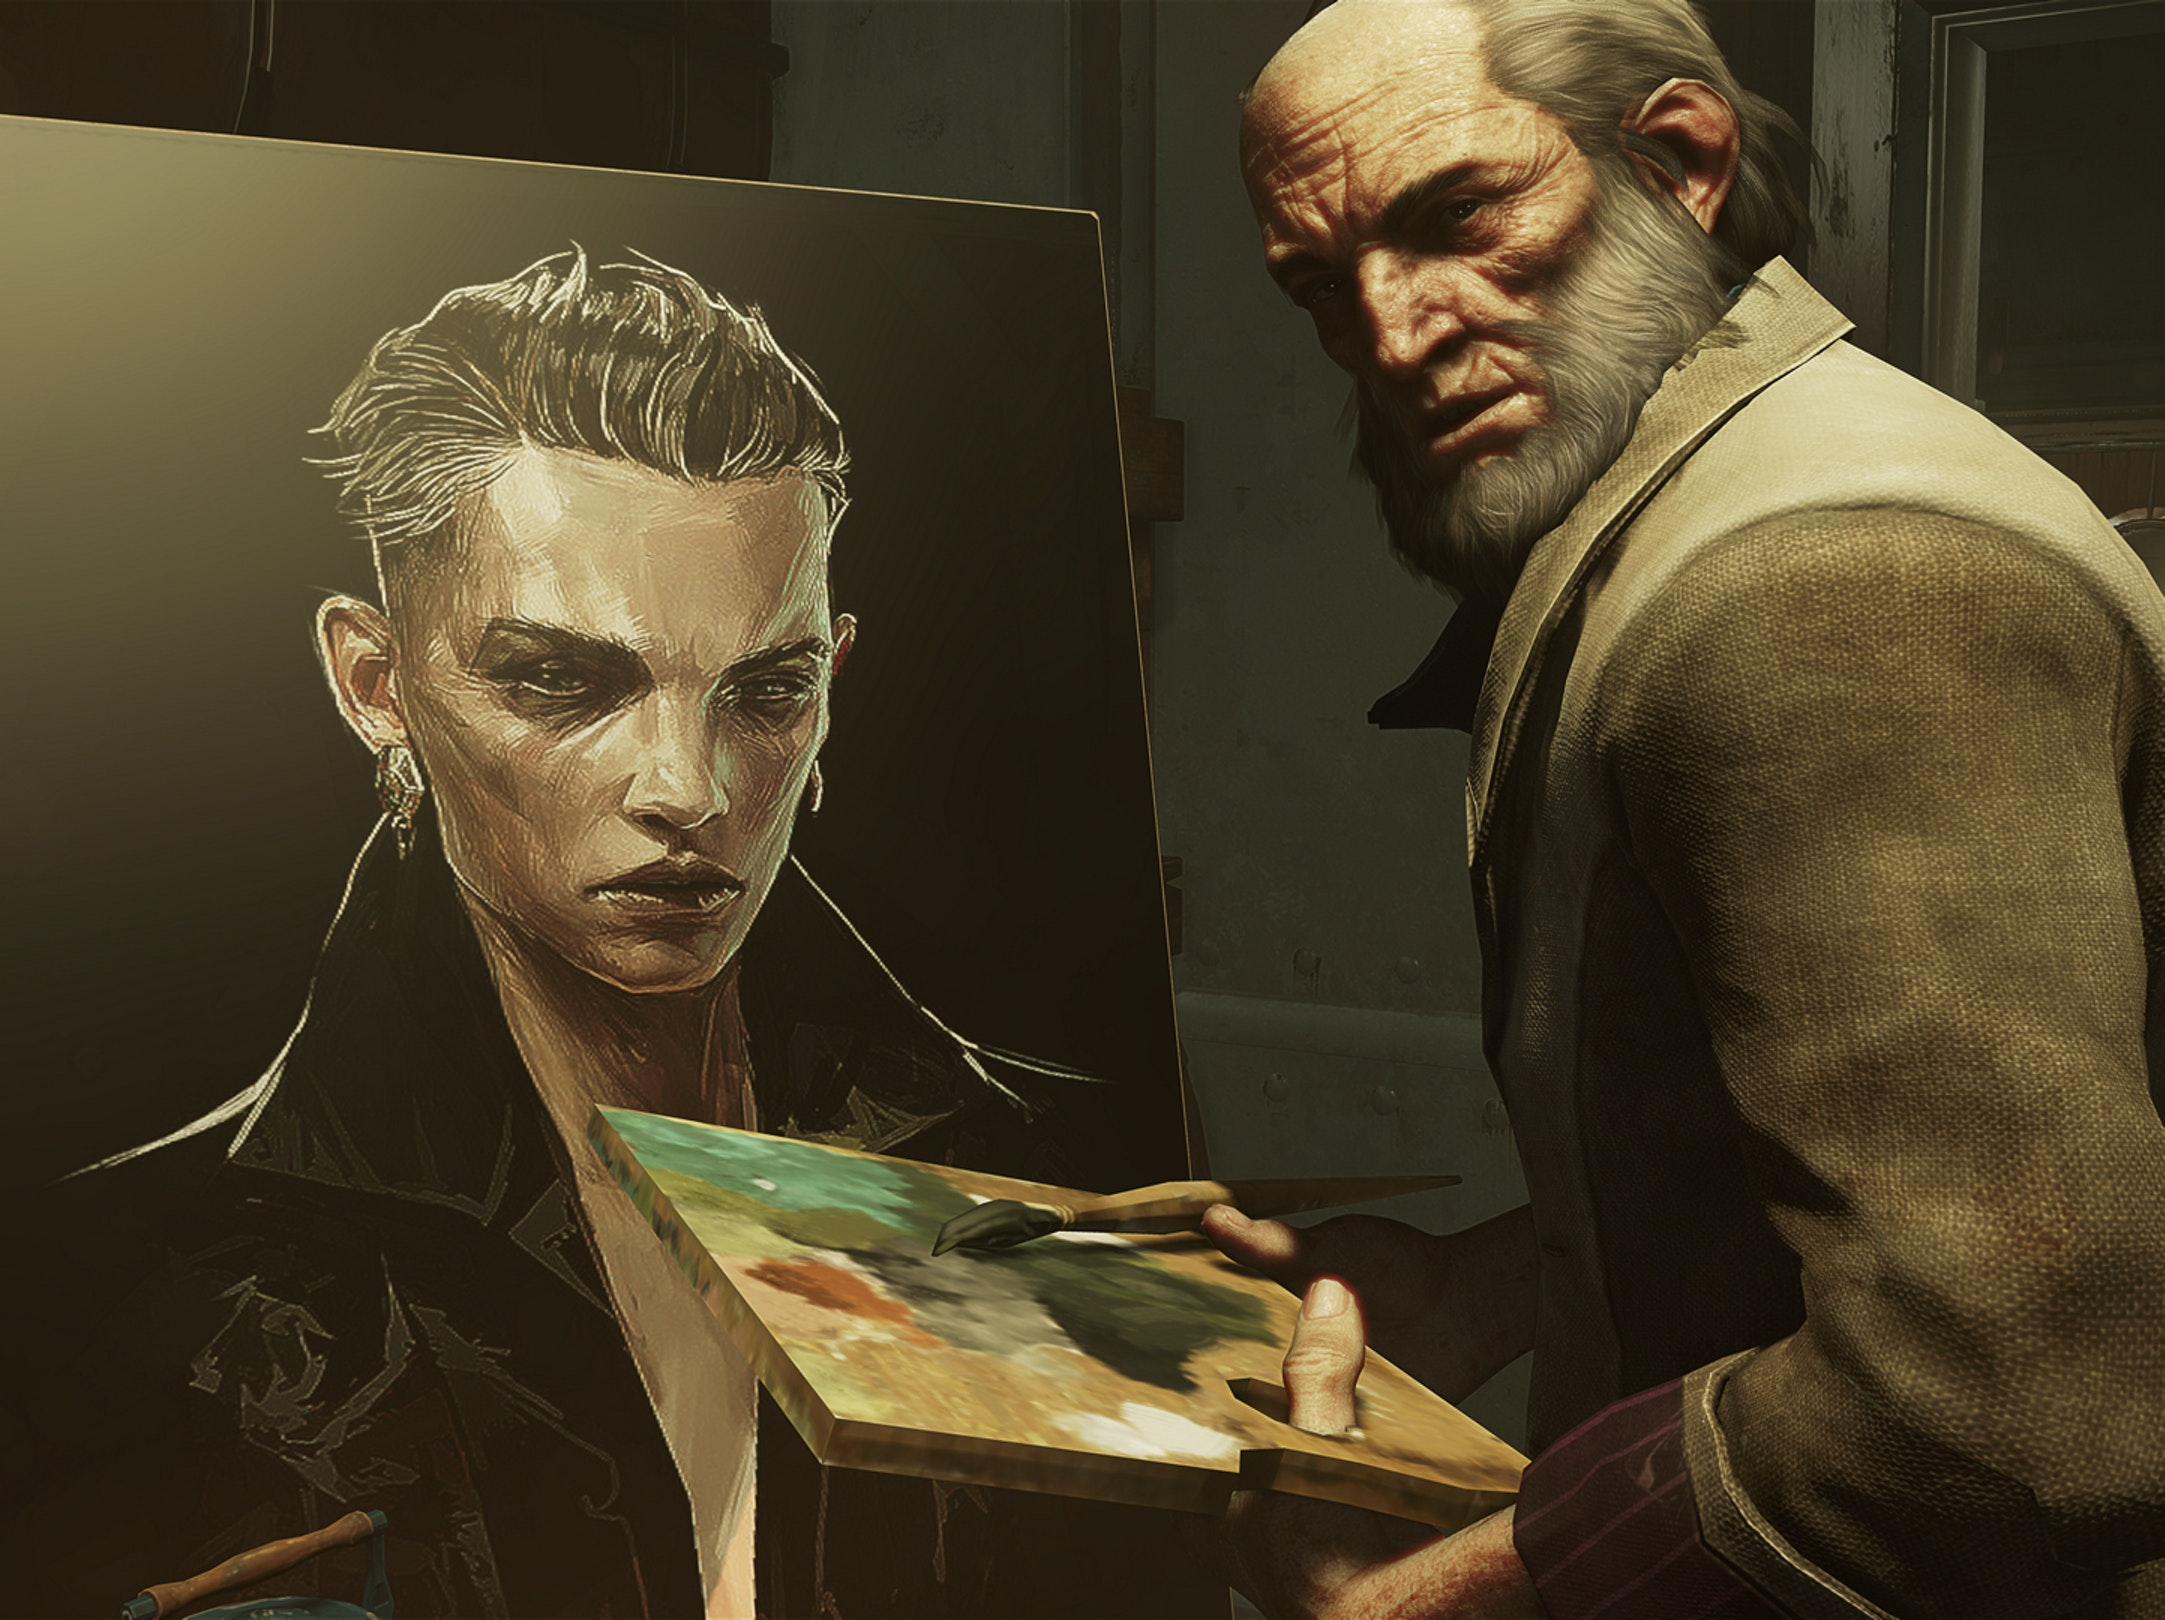 This is Anton Sokolov, seen here painting the usurper, Delilah.